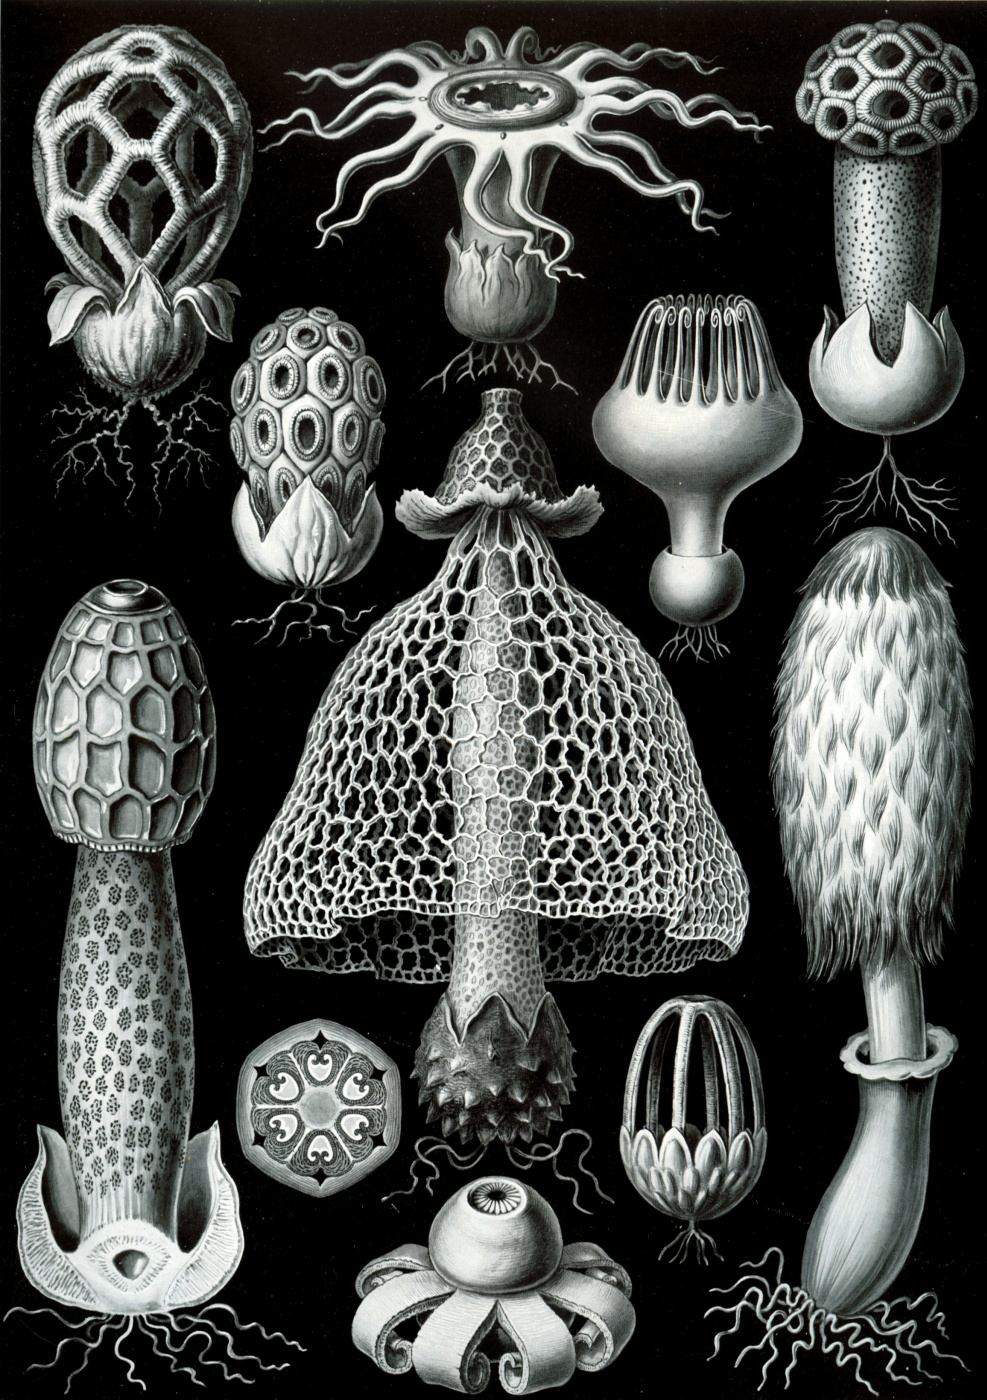 """Ernst Heinrich Haeckel. Basidiomycetes (Basidiomycetes). """"The beauty of form in nature"""""""